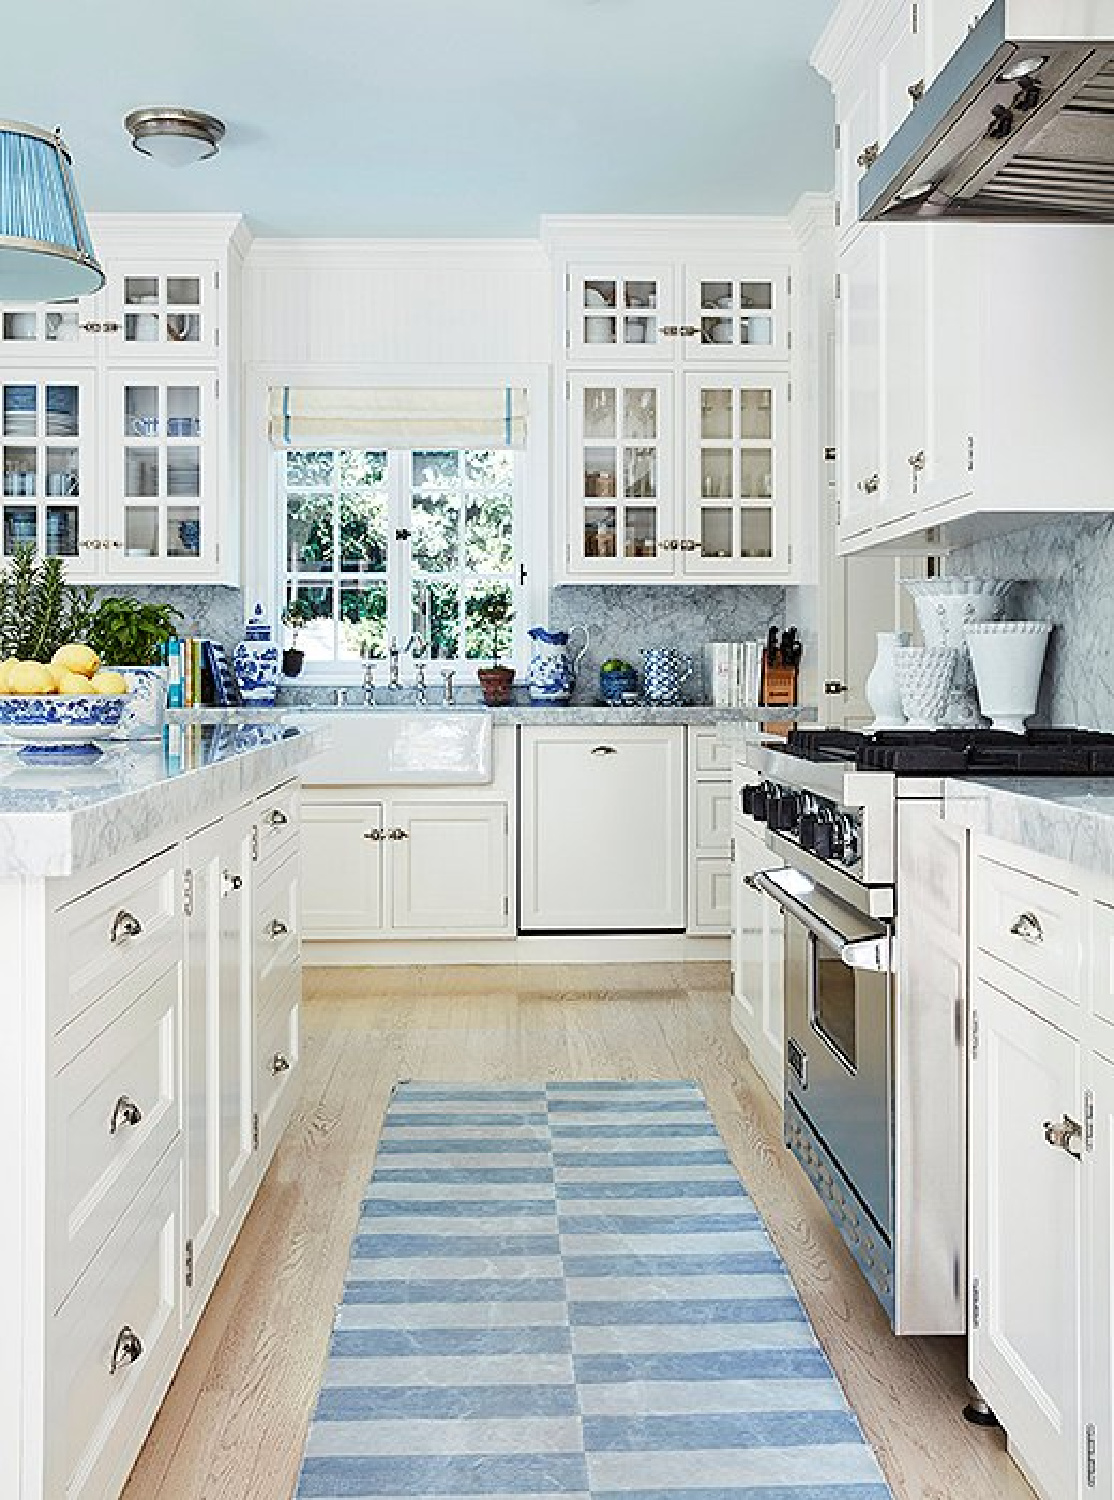 Beautiful blue traditional kitchen with white cabinets - design by Mark Sikes. #bluekitchen #blueandwhite #kitchendesign